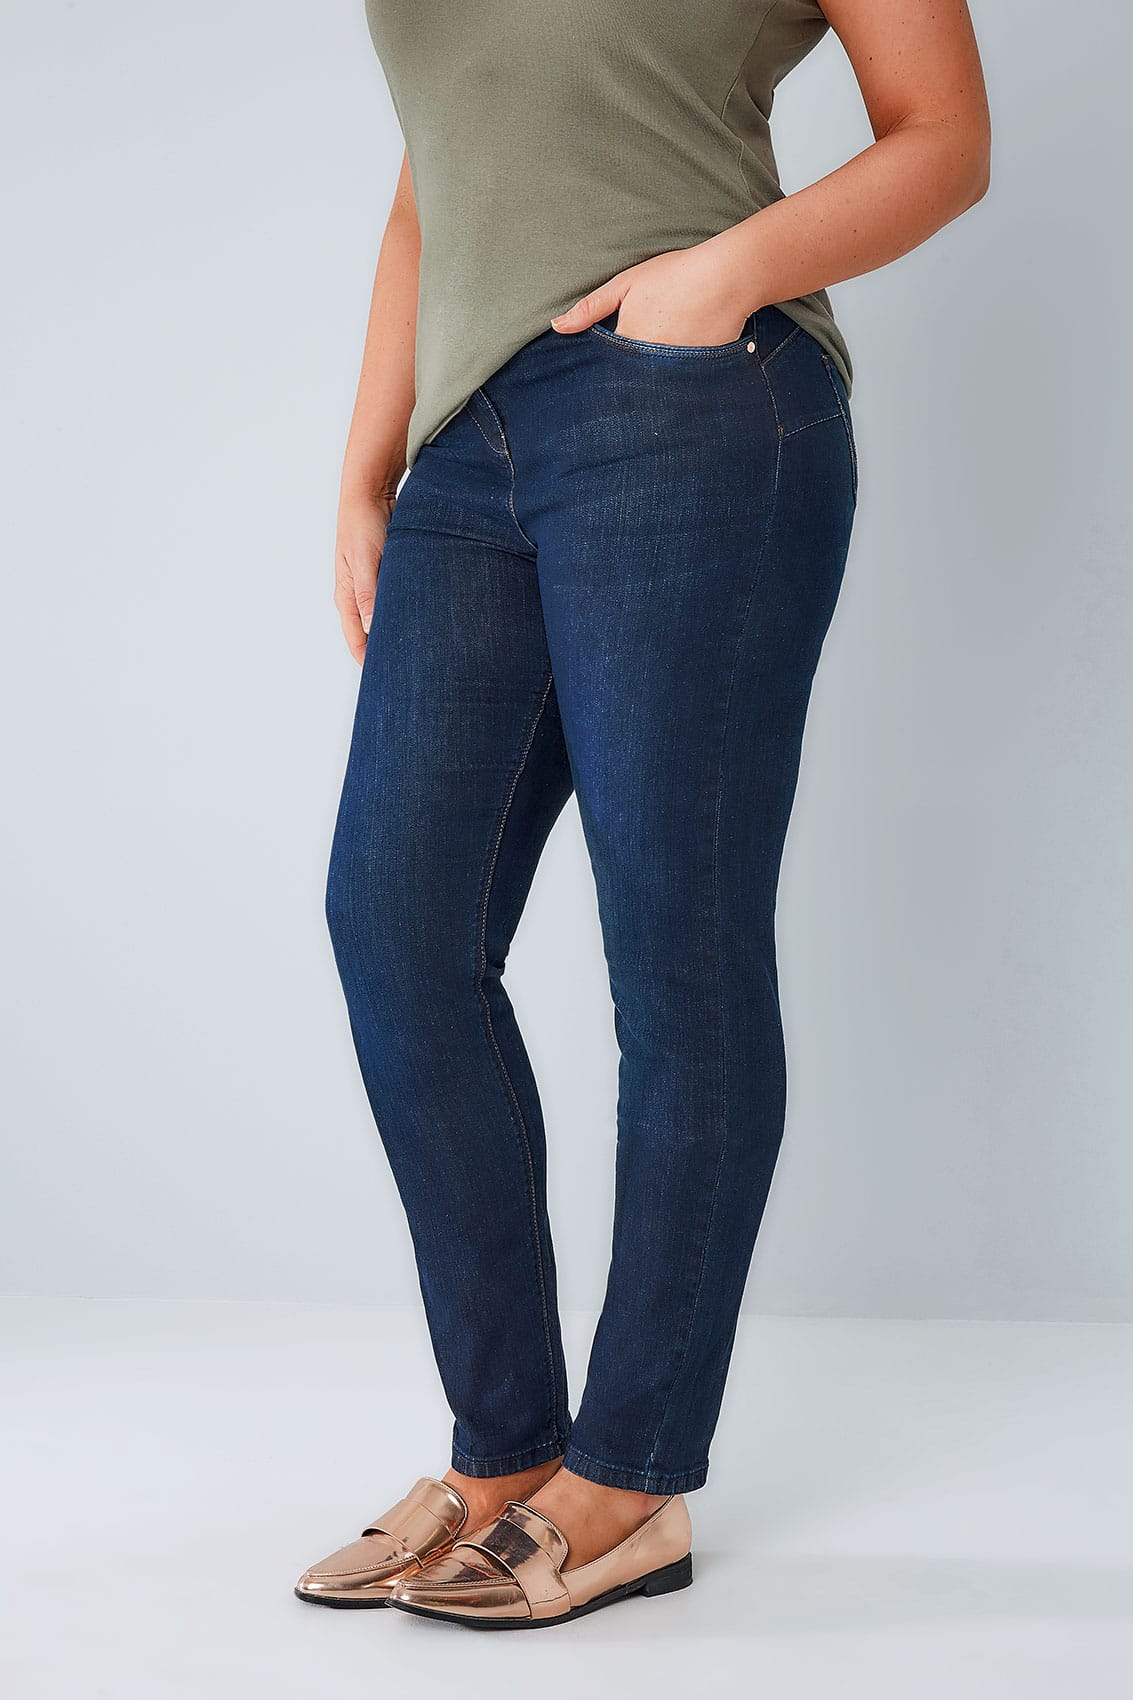 Indigo Blue Skinny Shaper Ava Jeans, Plus Size 14 To 28-1464